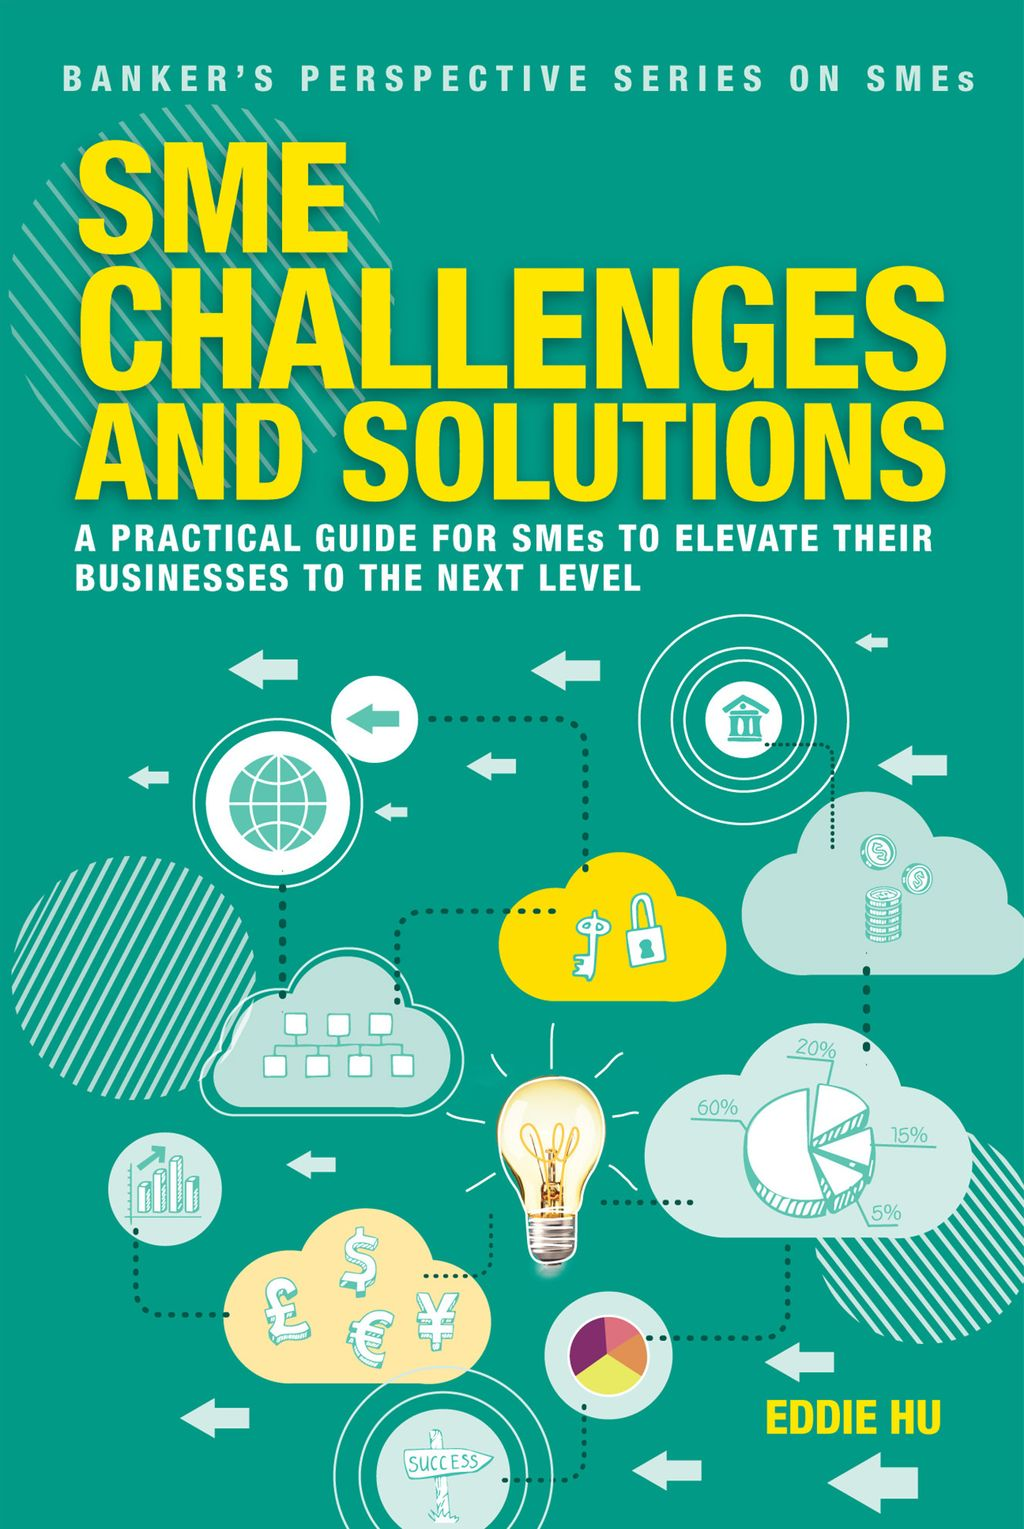 SME Challenges and Solutions.jpg